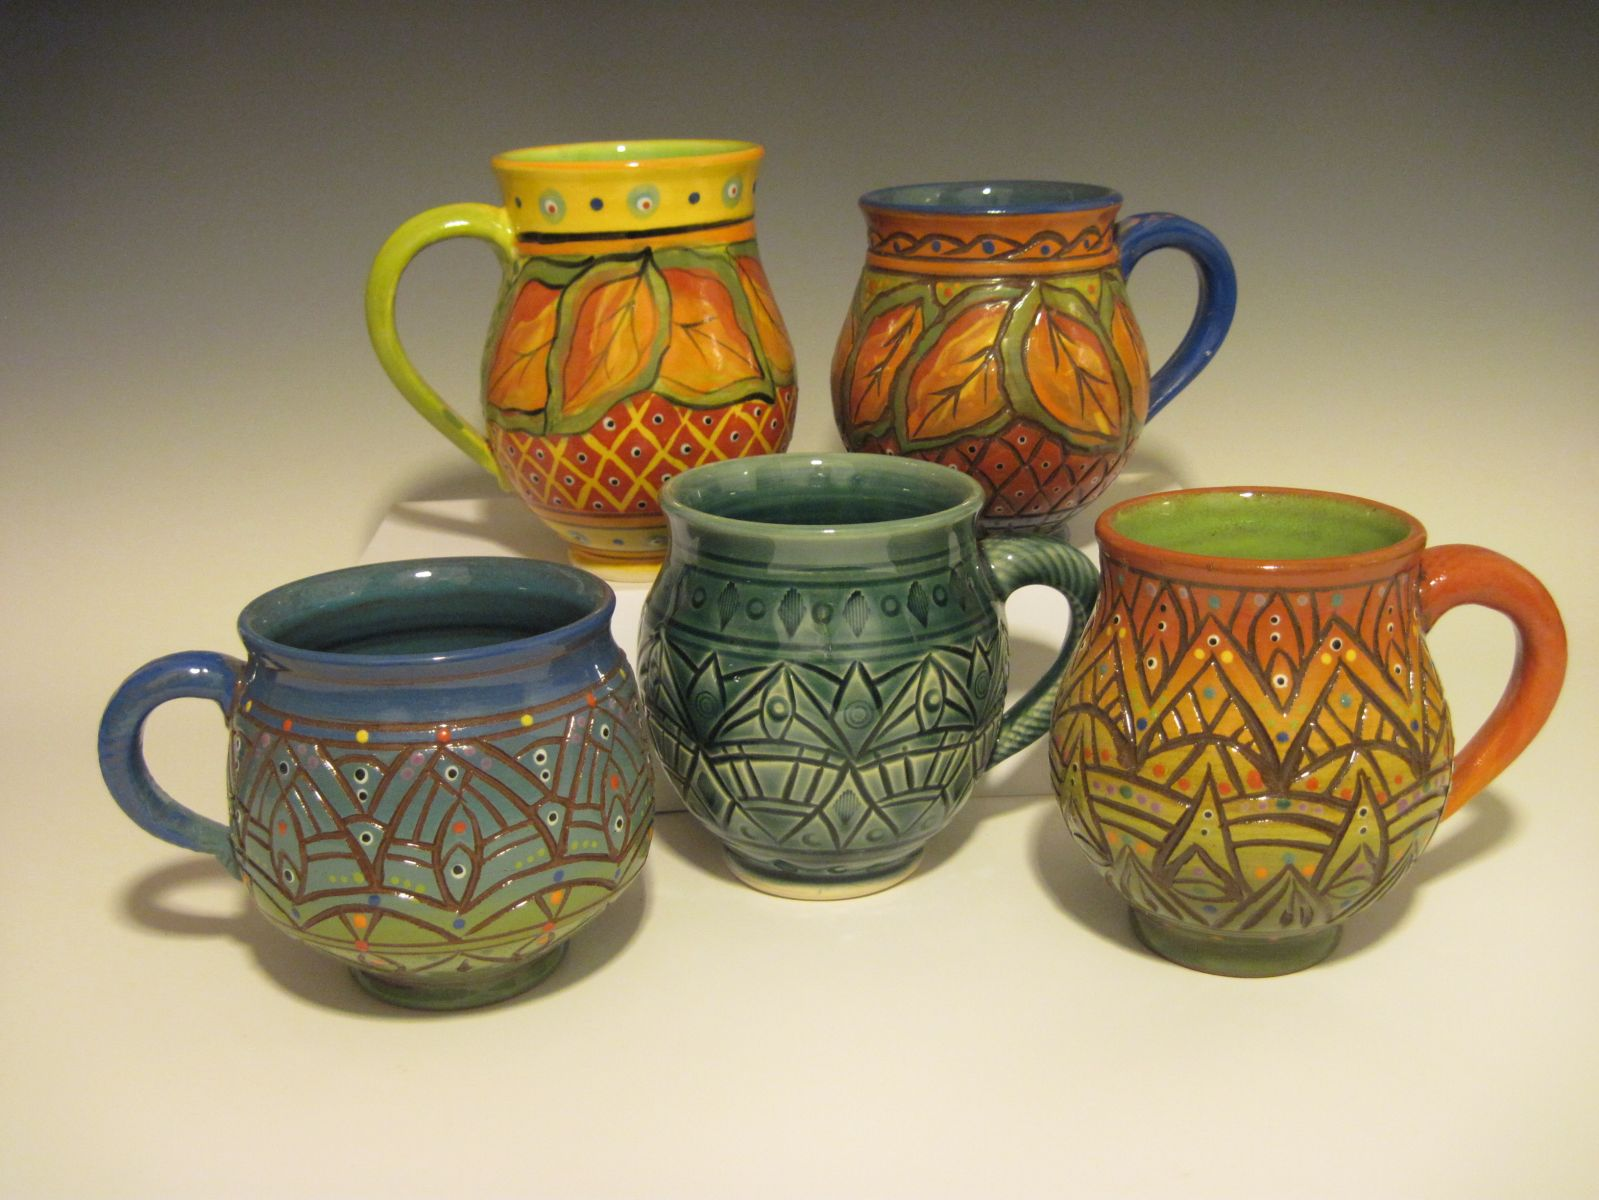 Mugs, mugs and more mugs!!